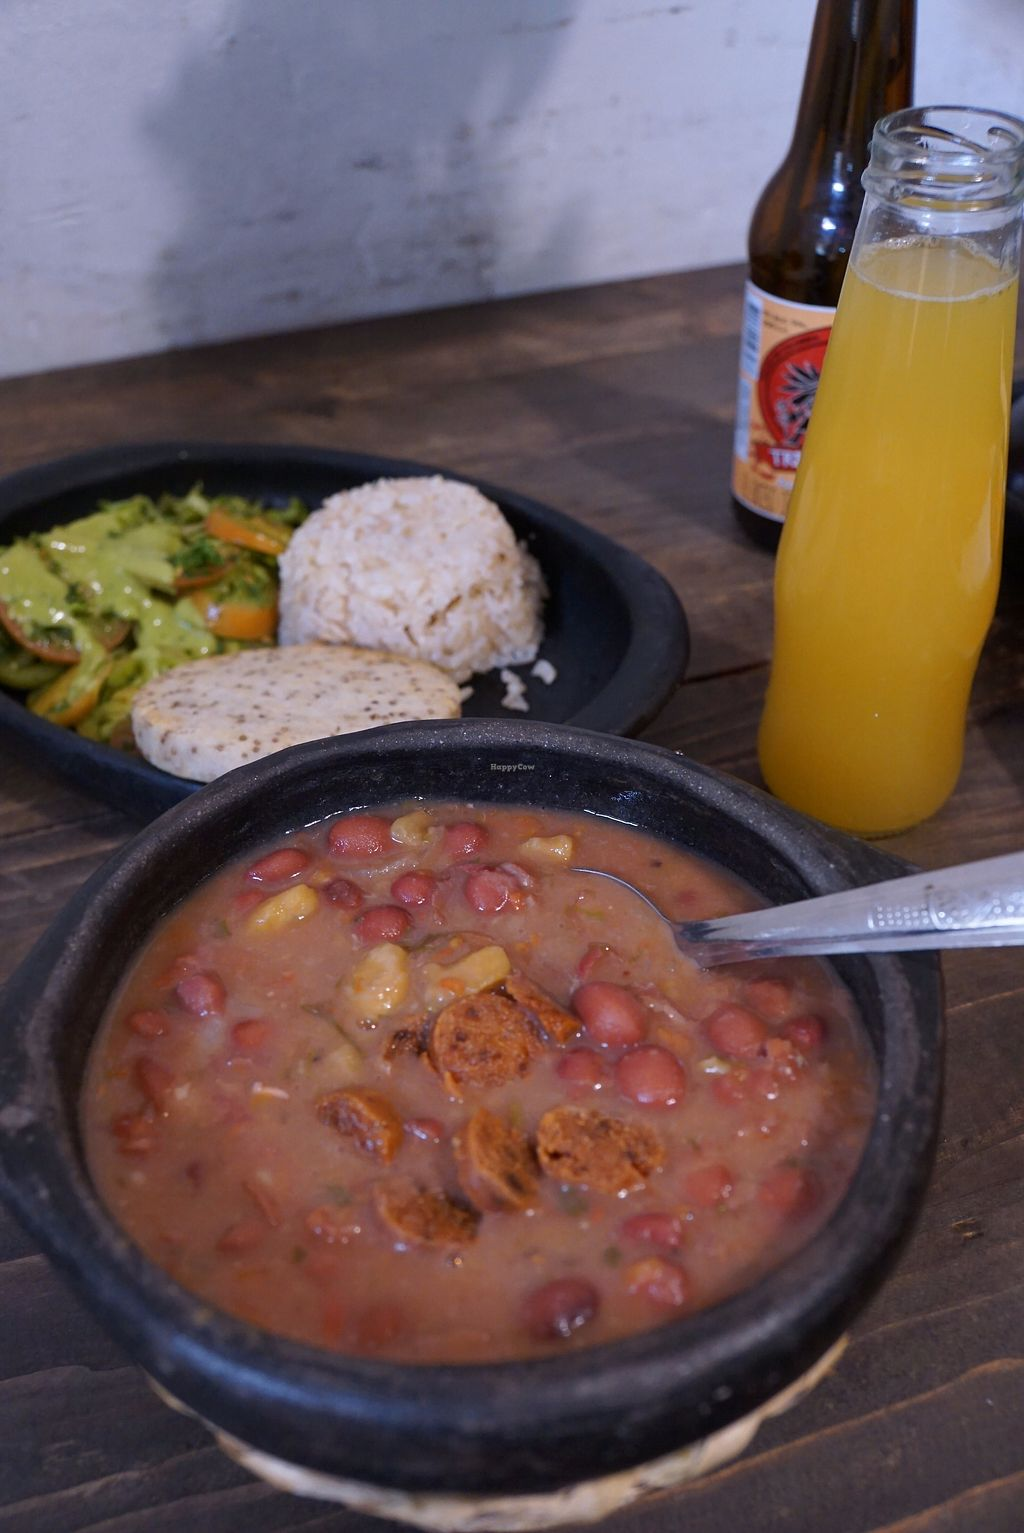 """Photo of Nativo  by <a href=""""/members/profile/Eepie"""">Eepie</a> <br/>Menu of the day (9.000 pesos). Bean soup with seitan <br/> August 15, 2017  - <a href='/contact/abuse/image/54950/292958'>Report</a>"""